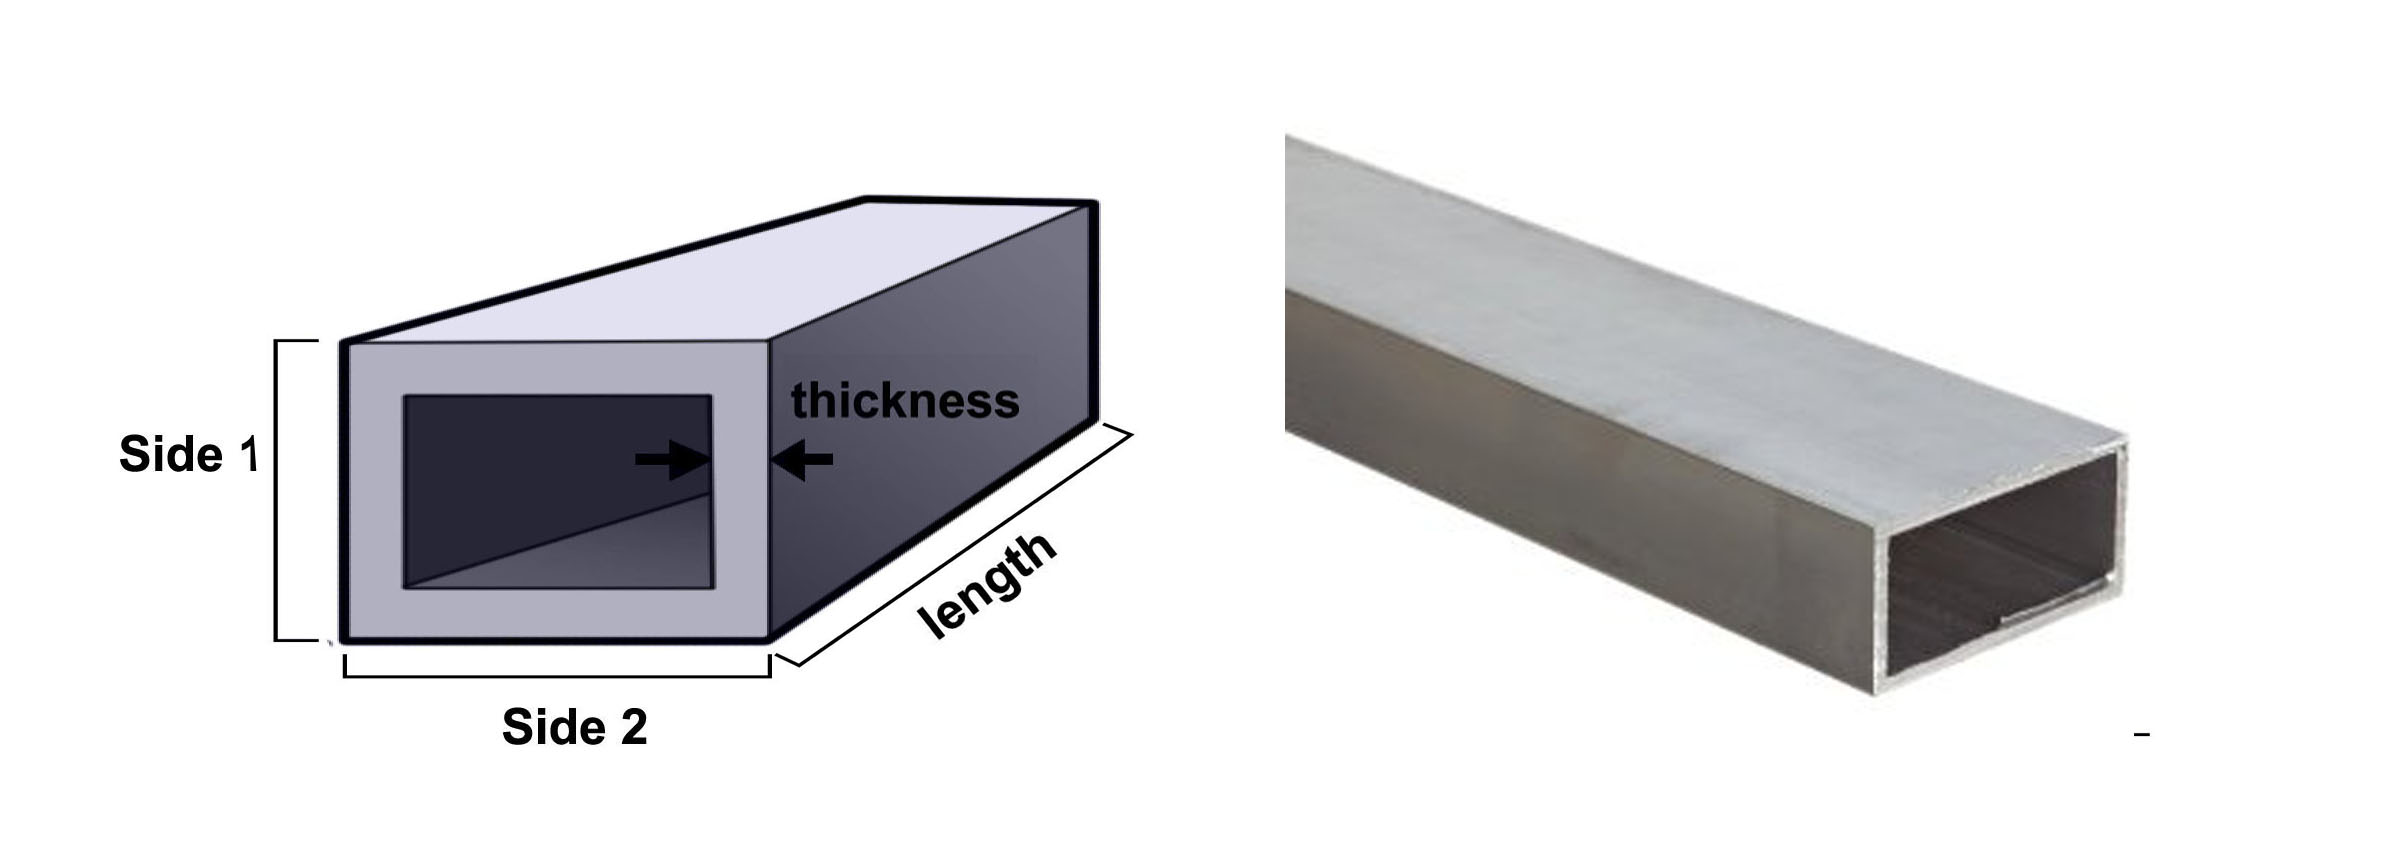 how to cut square metal tubing